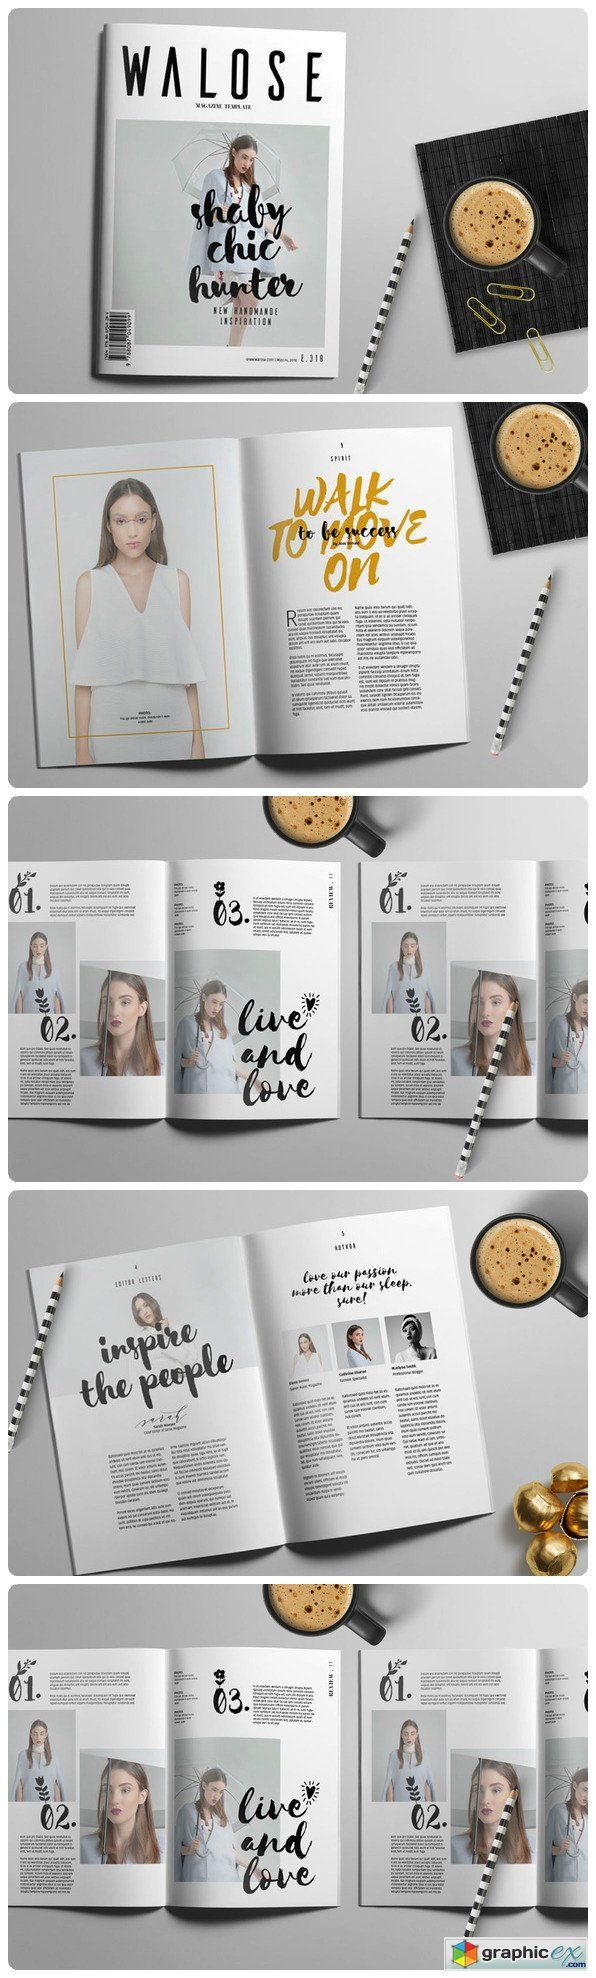 InDesign Magazine Template 575634 More                                                                                                                                                                                 More